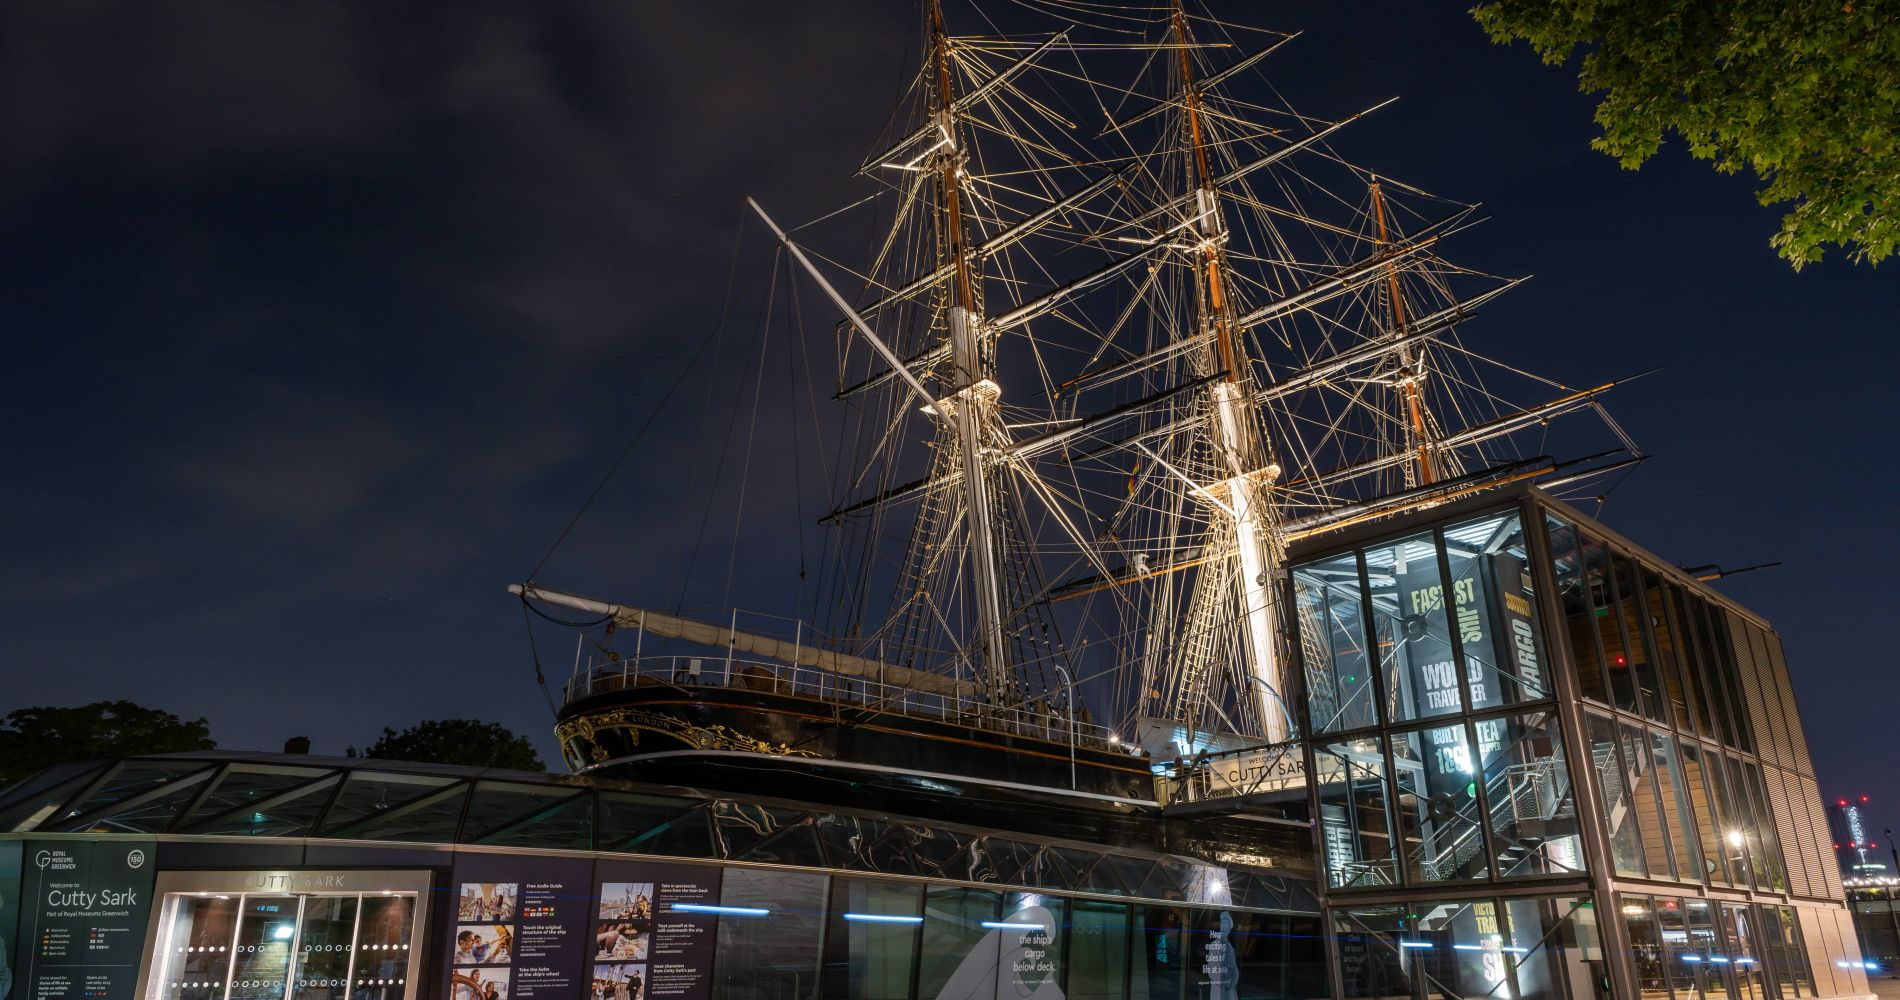 Cutty Sark with Afternoon Tea and a Hop On Hop Off River Pass for Two